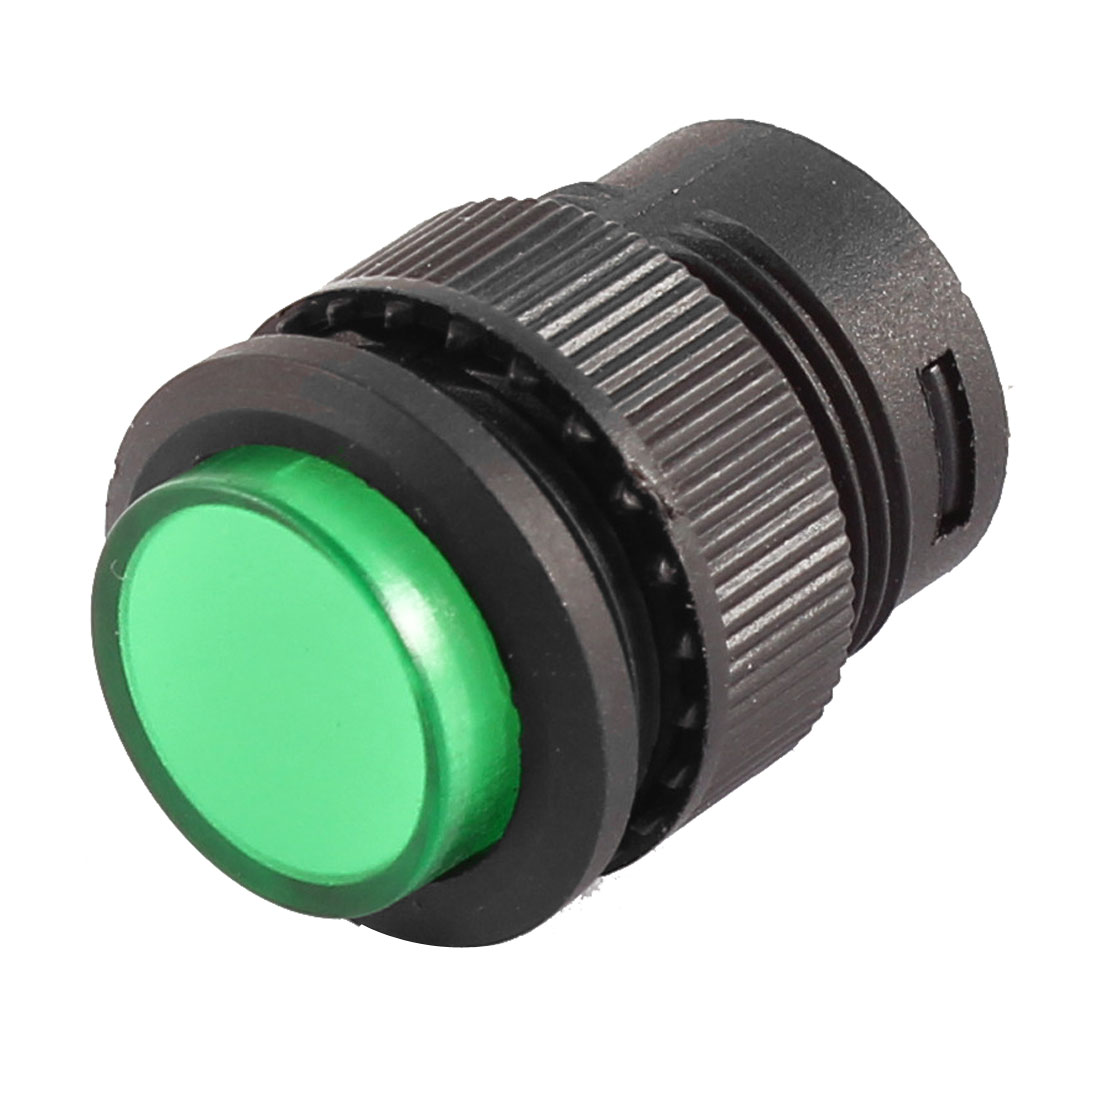 125V/3A 250V/1.5A SPST OFF-(ON) Green Momentary Push Button Switch - image 1 of 3